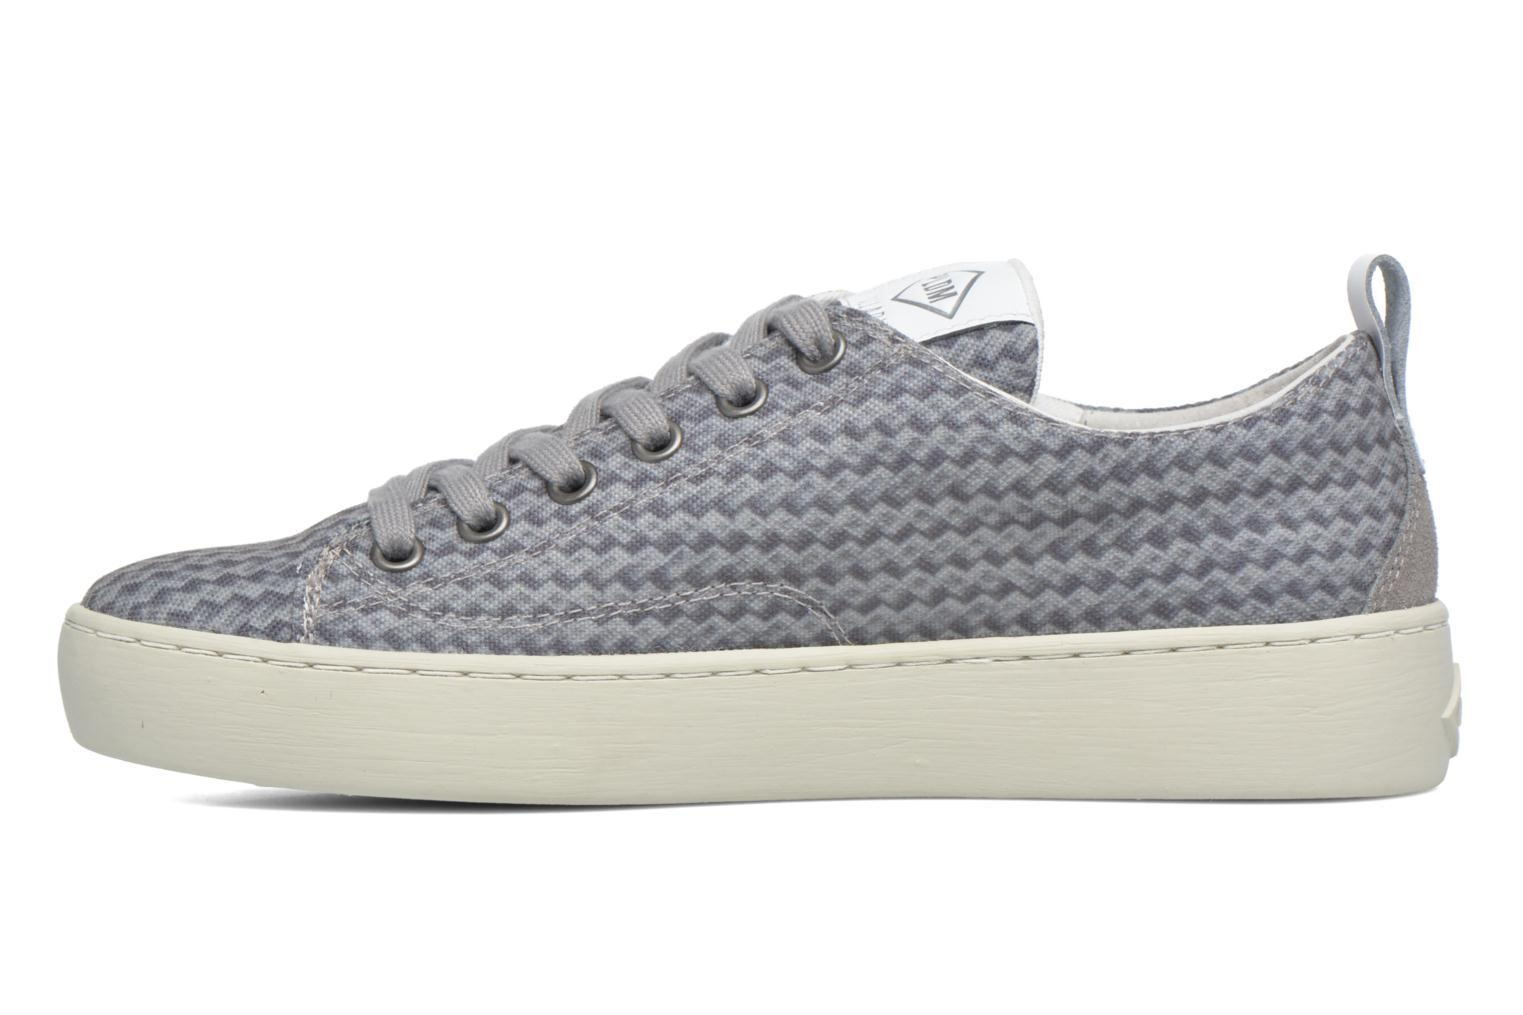 Ganama Print Light Grey/Braided